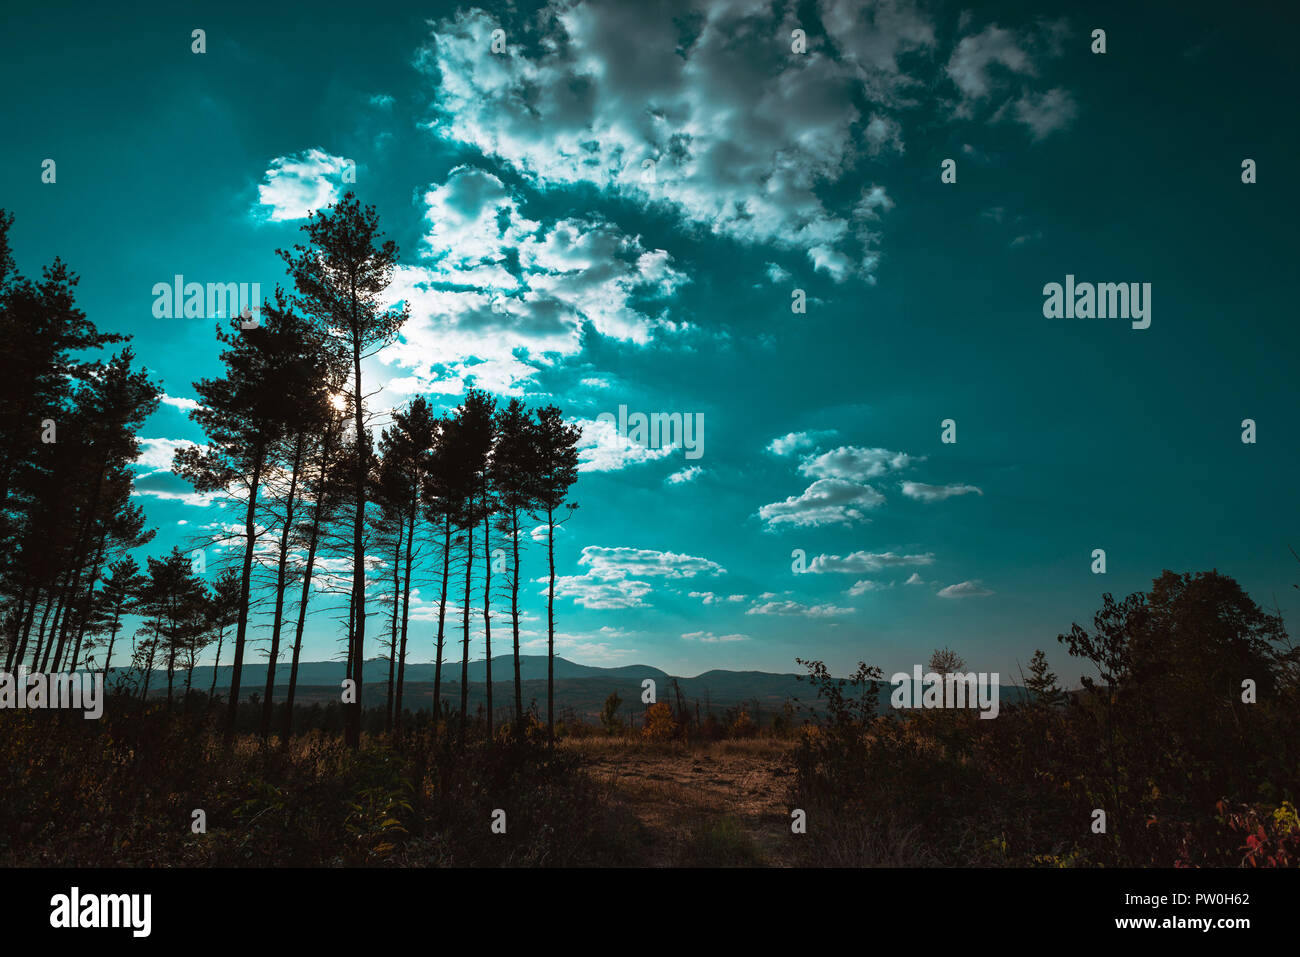 Interesting trees in the summer sky - Stock Image